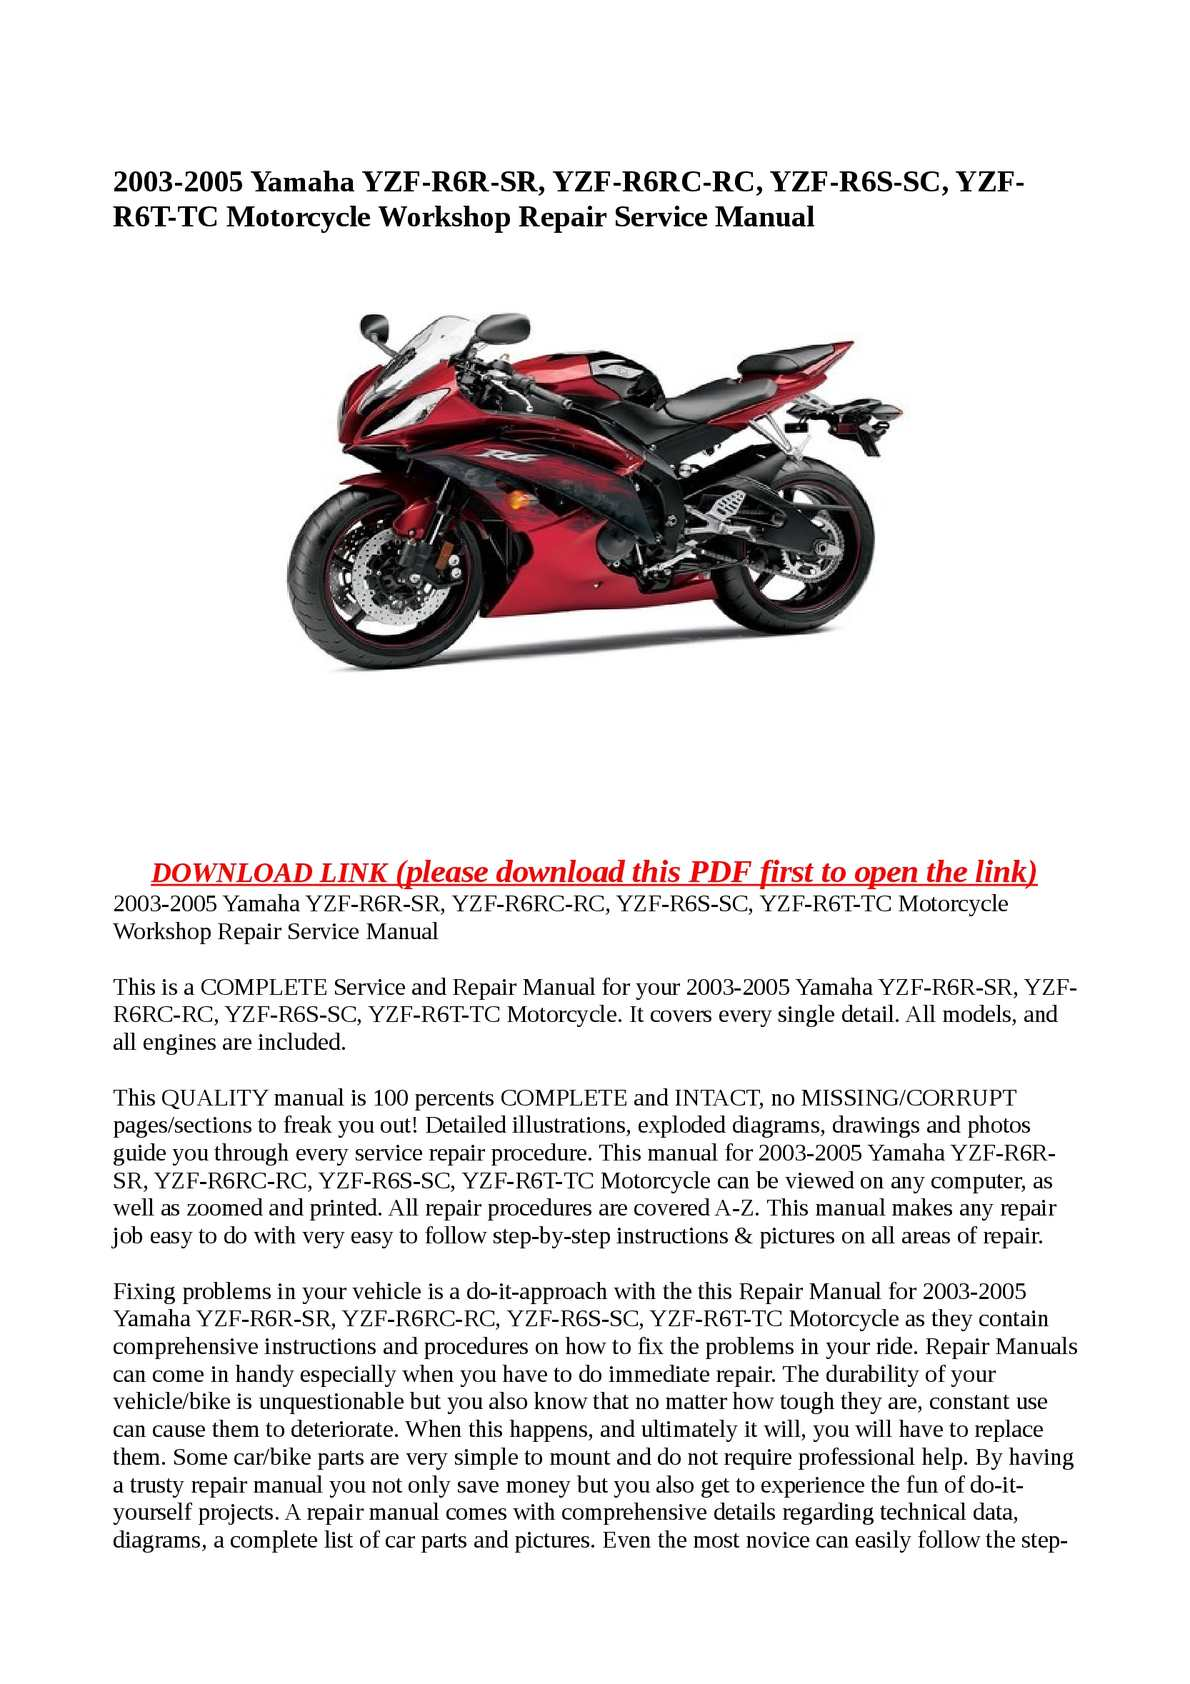 Calaméo - 2003-2005 Yamaha YZF-R6R-SR, YZF-R6RC-RC, YZF-R6S-SC, YZF-R6T-TC Motorcycle  Workshop Repair Service Manual